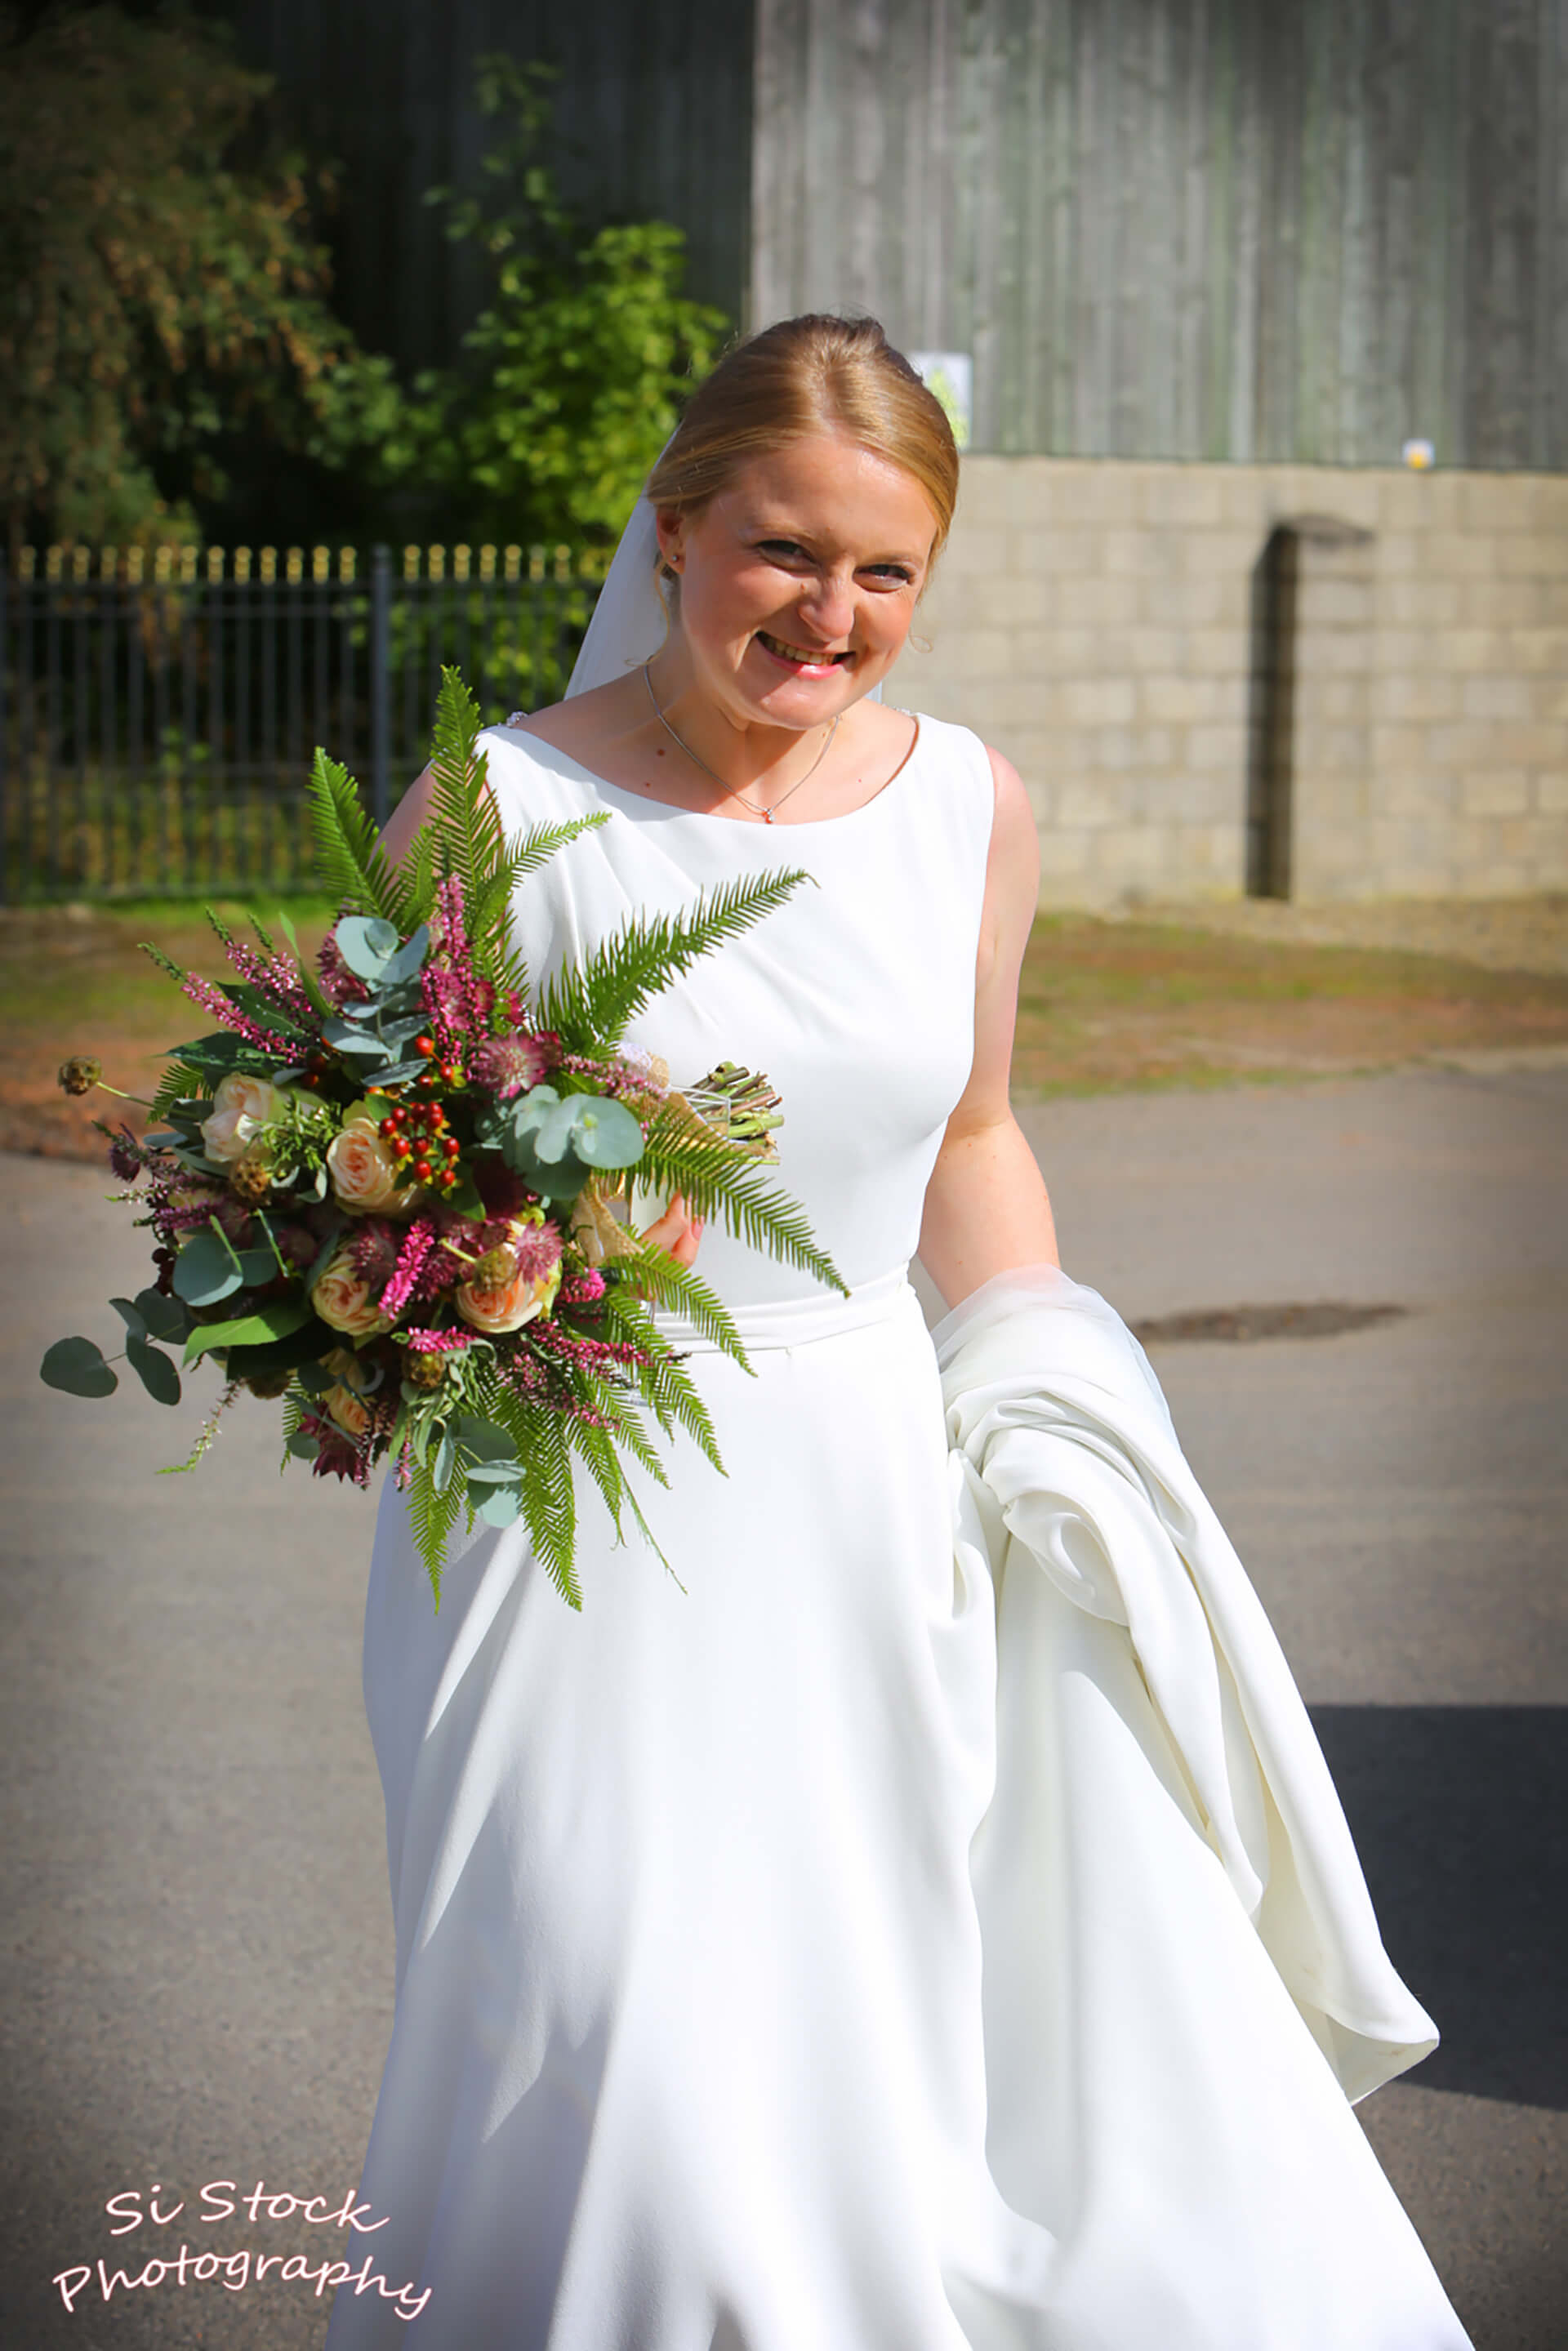 Our beautiful bride Jess photographed by Simon Stock.